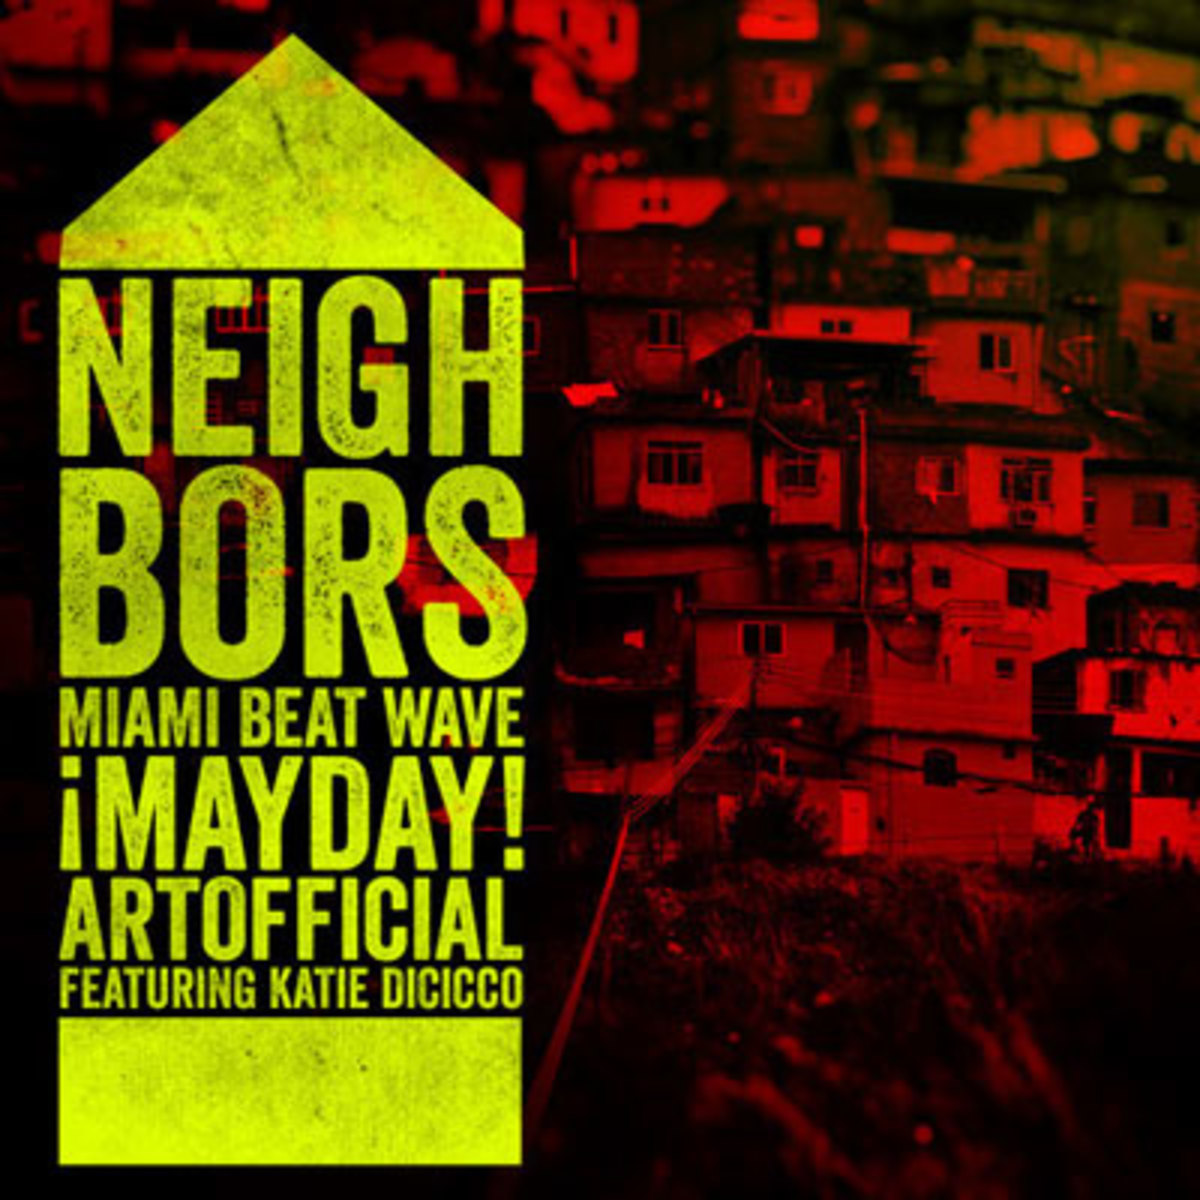 miamibeatwave-neighbors.jpg